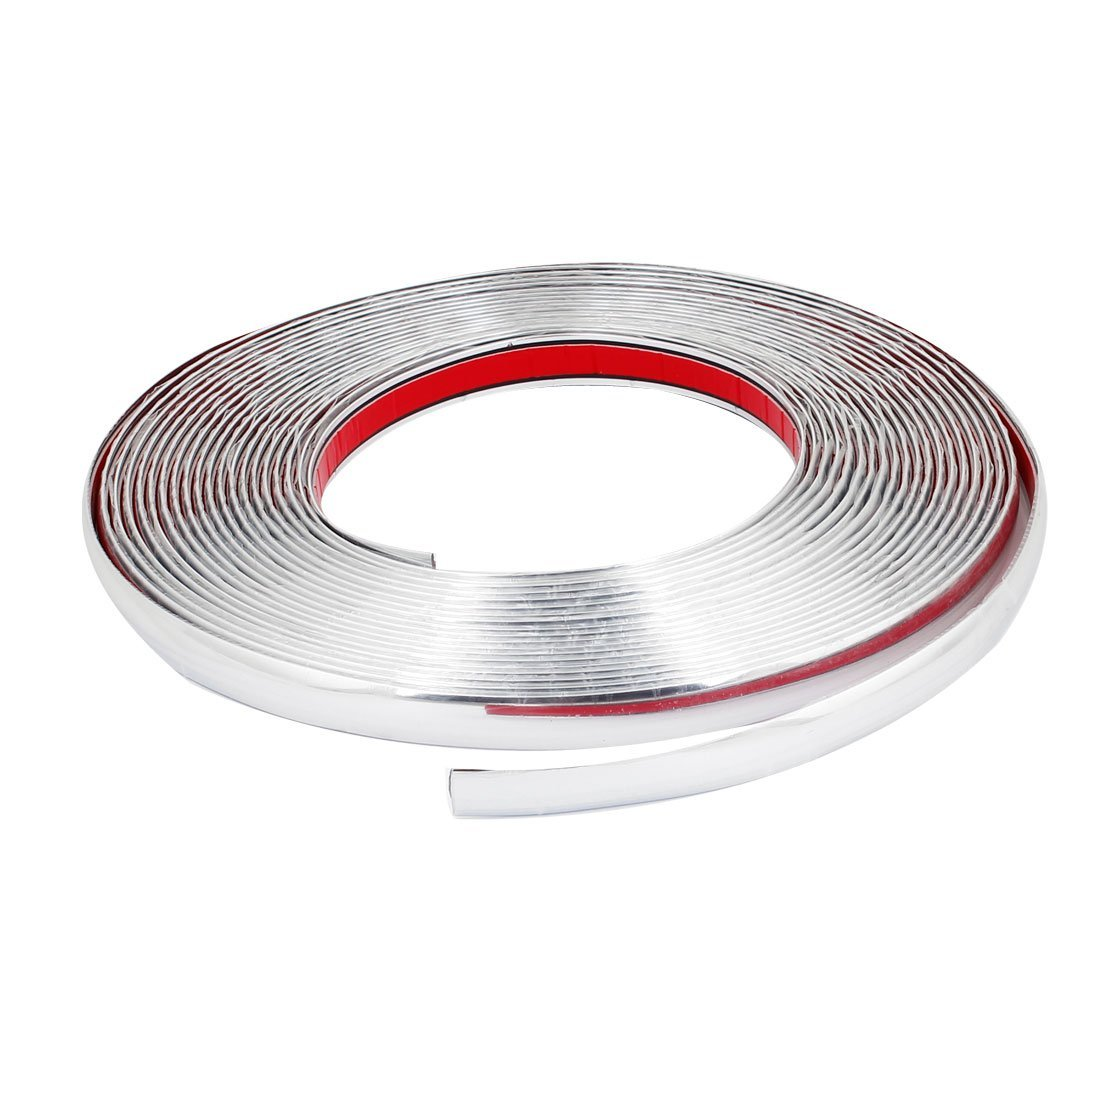 uxcell Car Decoration Silver Tone Soft Chrome Moulding Trim Strip 18mm x 15M